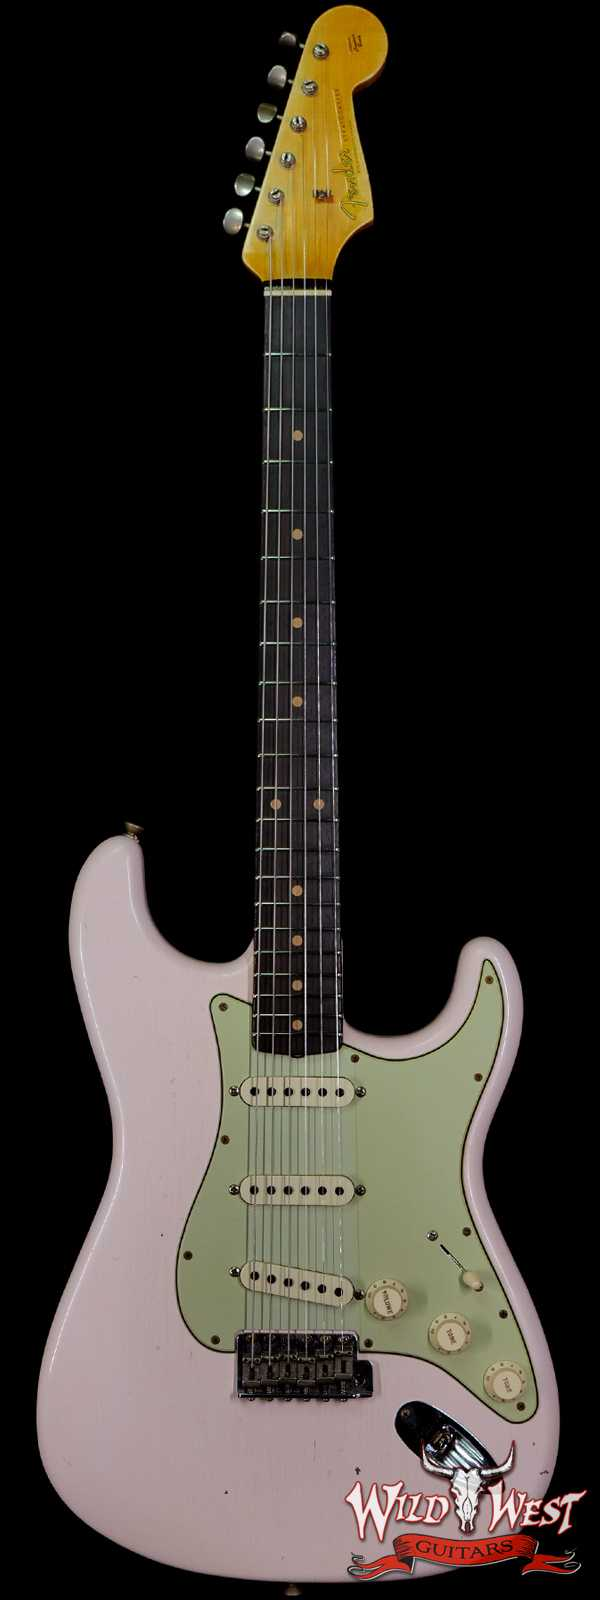 Fender Custom Shop Limited 1960 Stratocaster Dark Rosewood Slab Board Hand-Wound Pickups Journeyman Relic Super Faded Shell Pink